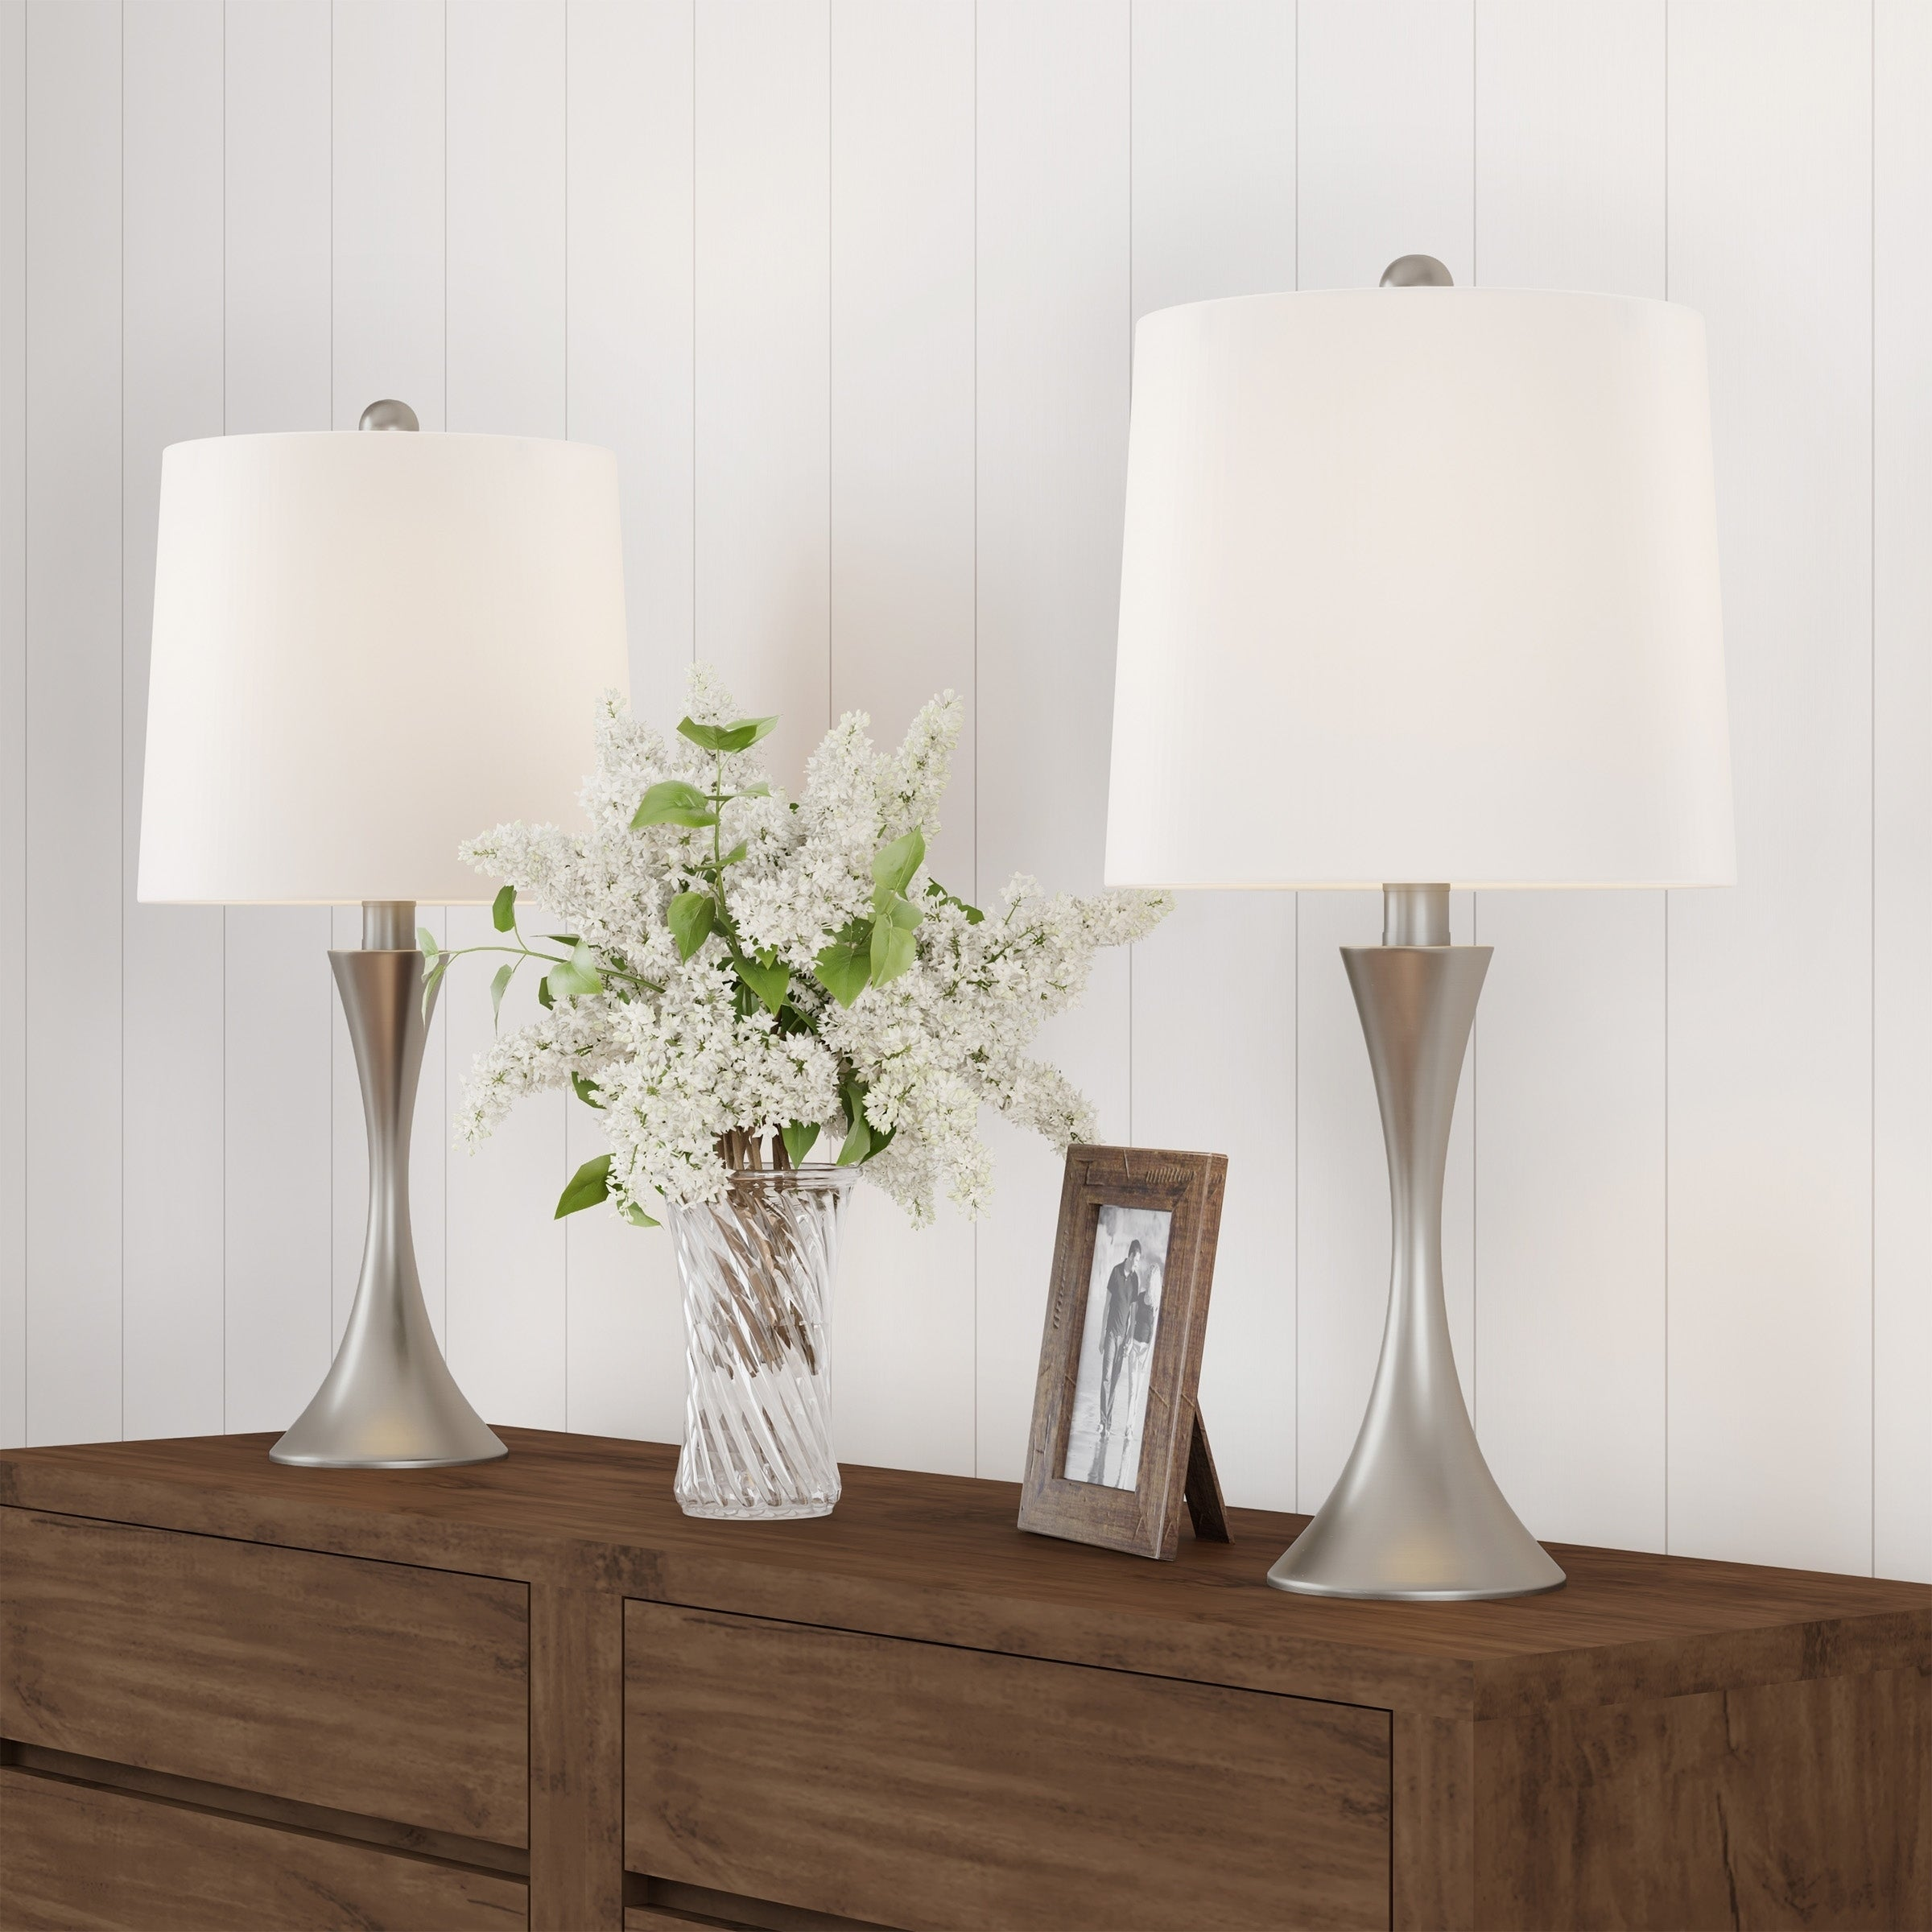 Image of: Shop Black Friday Deals On Table Lamps Set Of Mid Century Modern Silver Metal Flared Trumpet Base With Led Light Bulbs Included By Lavish Home Overstock 27871469